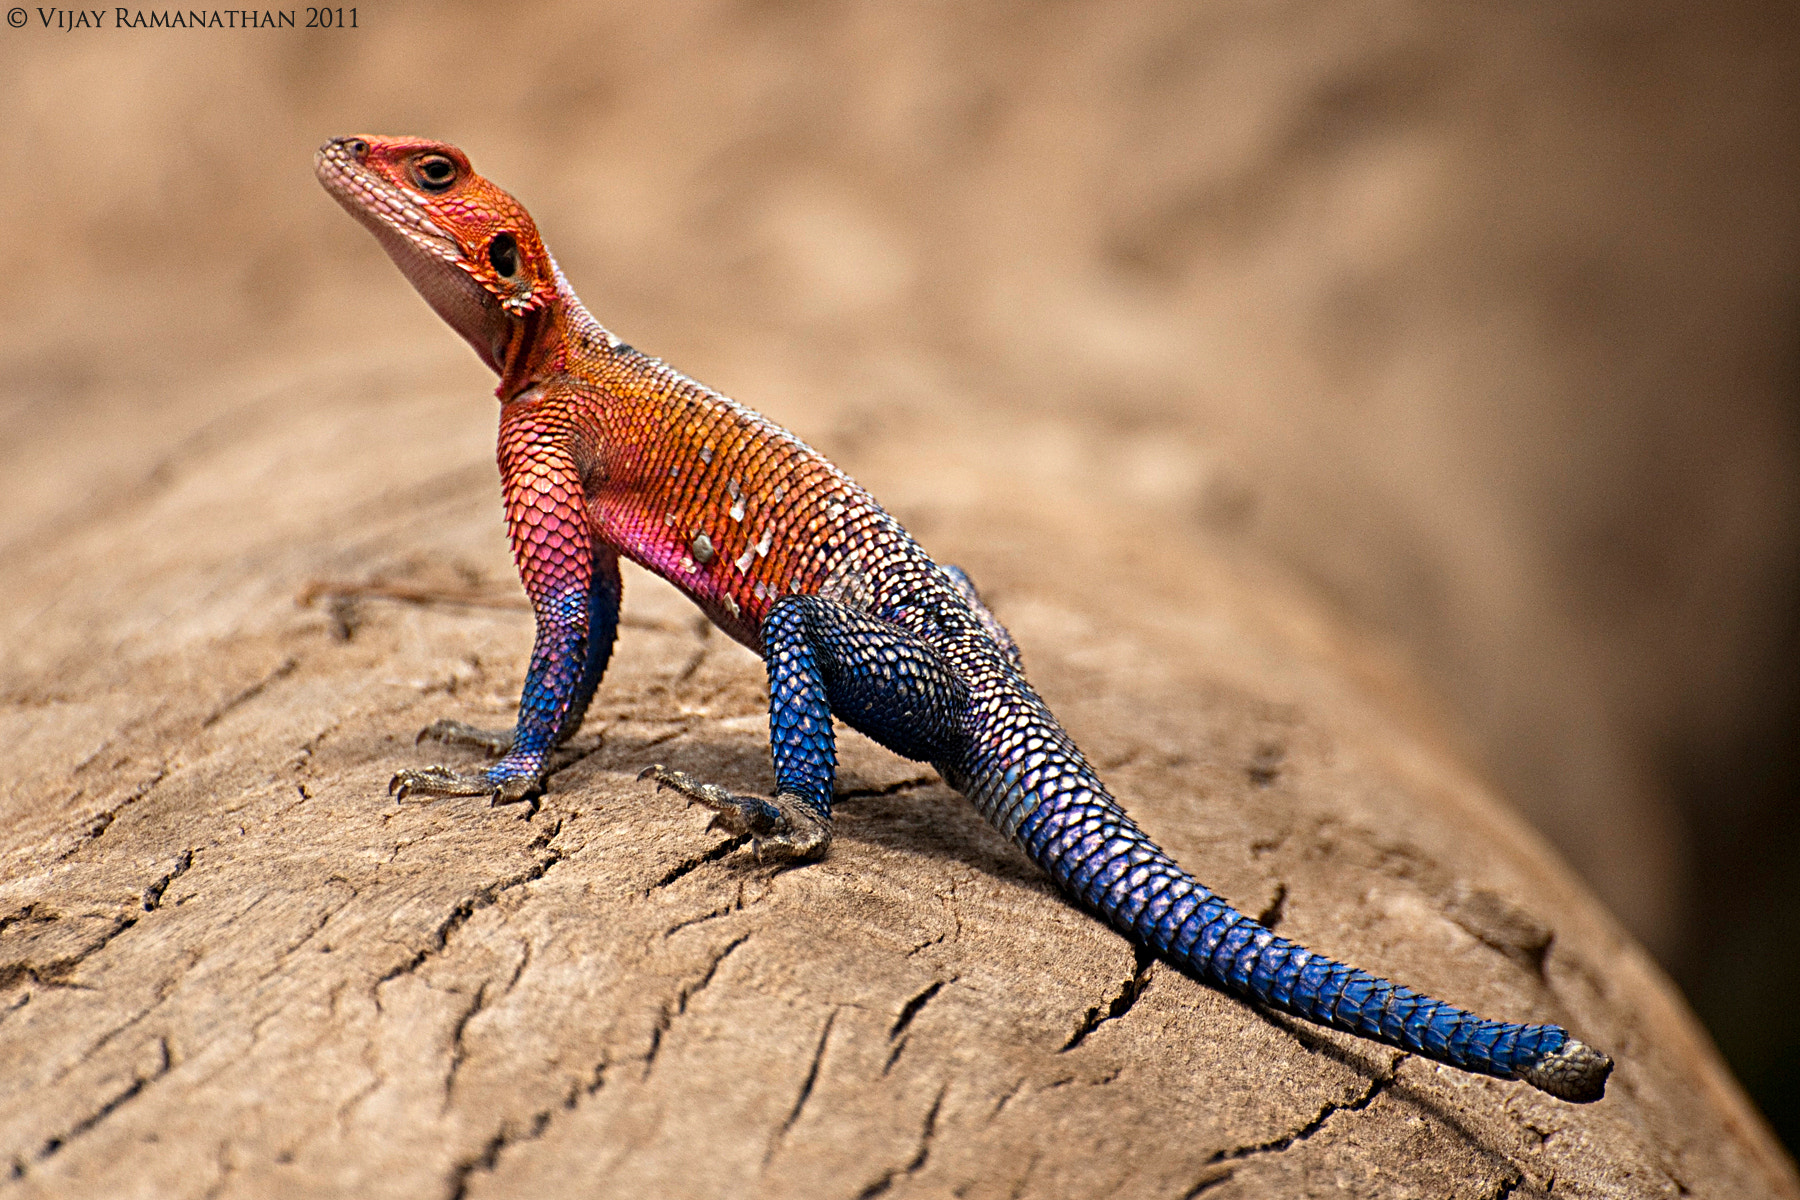 Photograph Mwanza Flat-headed Rock Agama  by Vijay Ramanathan on 500px